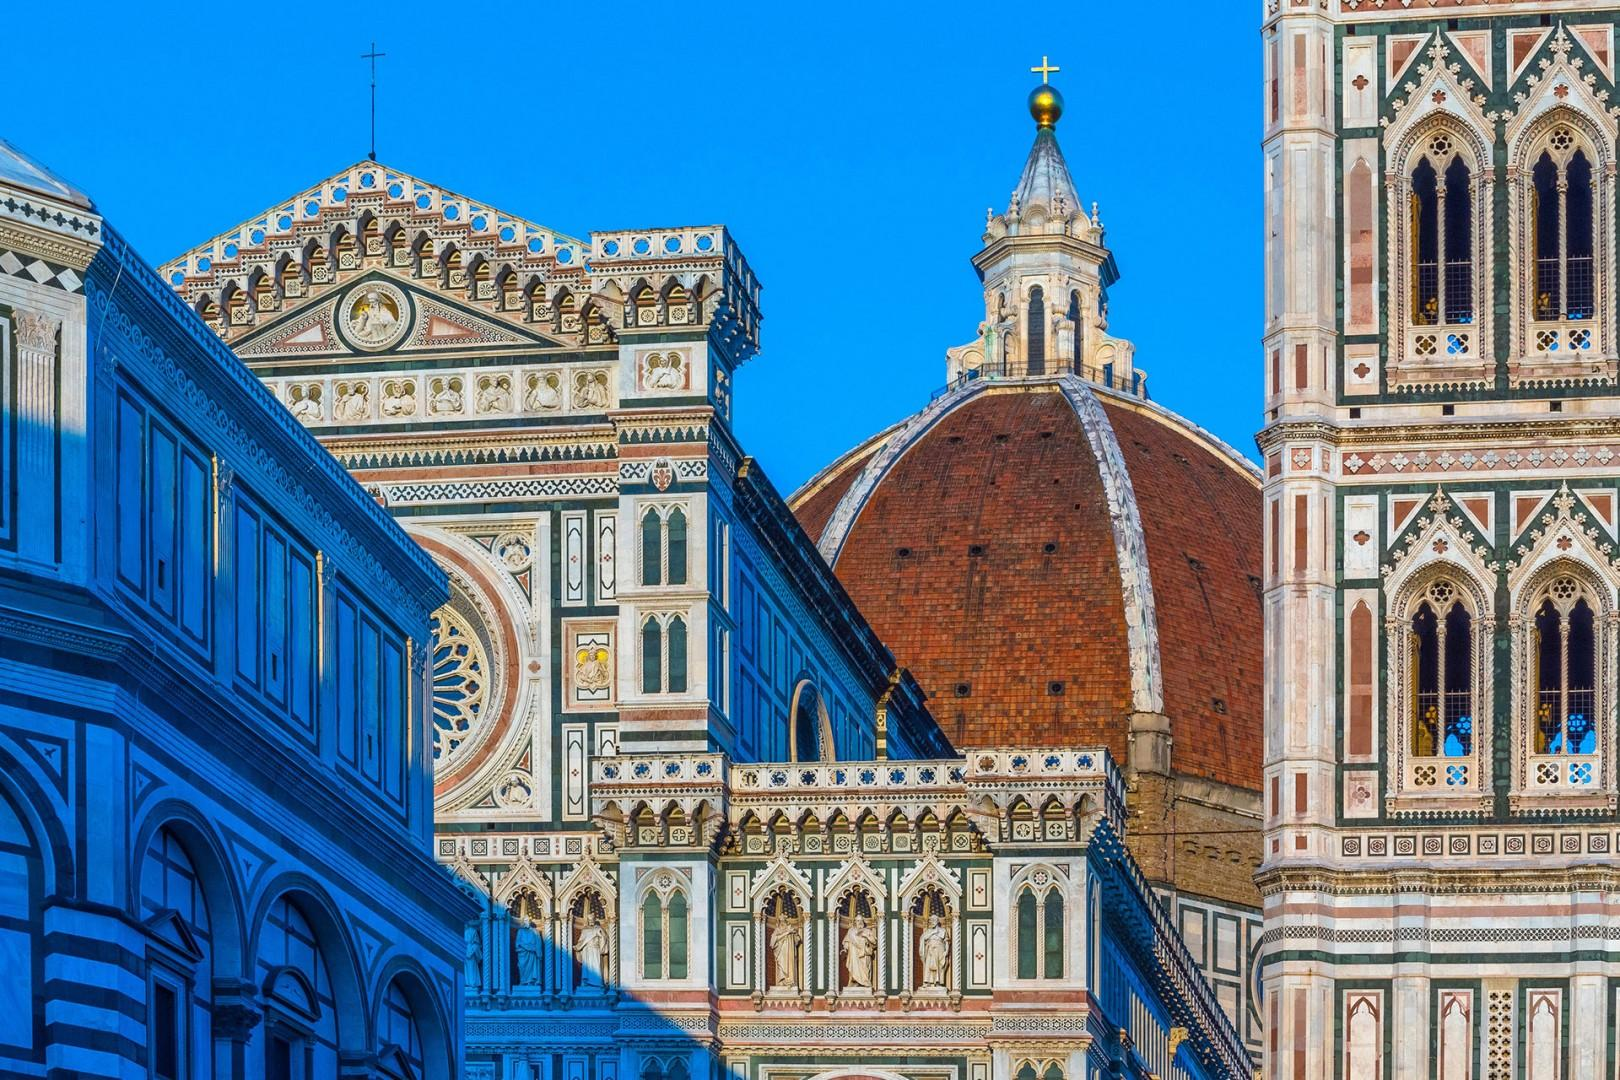 Brunelleschi's Dome crowns this world-famous architecture of the Cathedral, bell tower and baptistry.